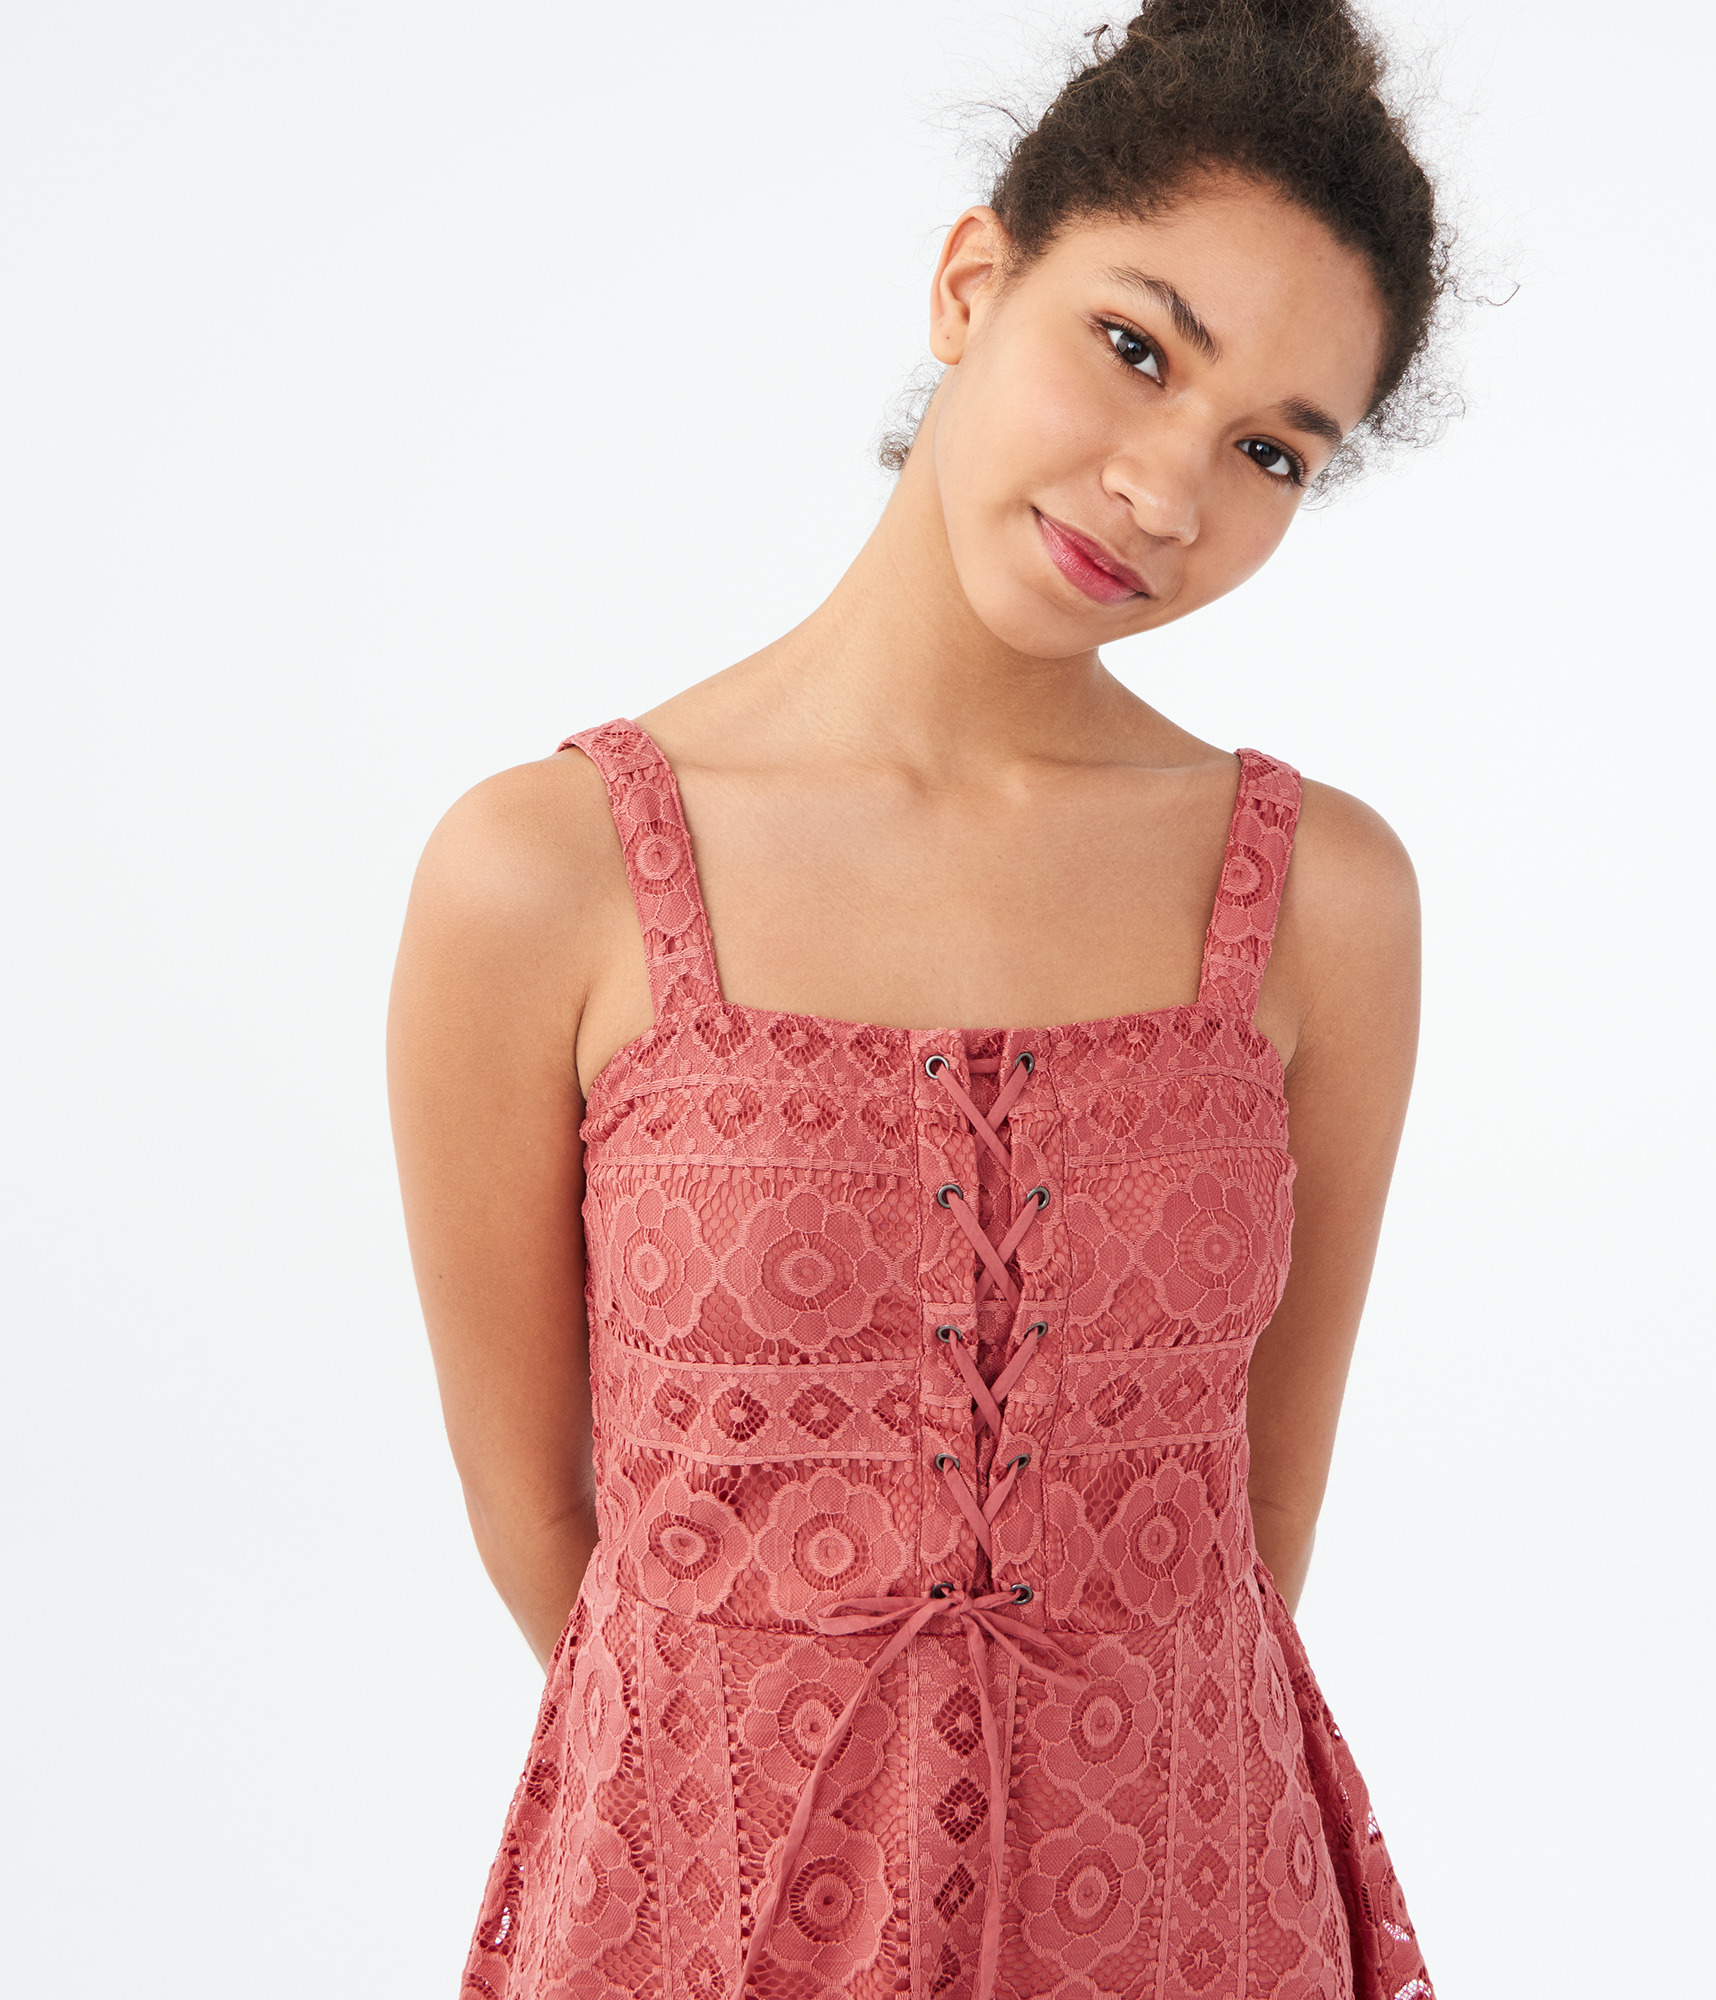 aeropostale-womens-solid-square-neck-lace-corset-fit-amp-flare-dress thumbnail 6